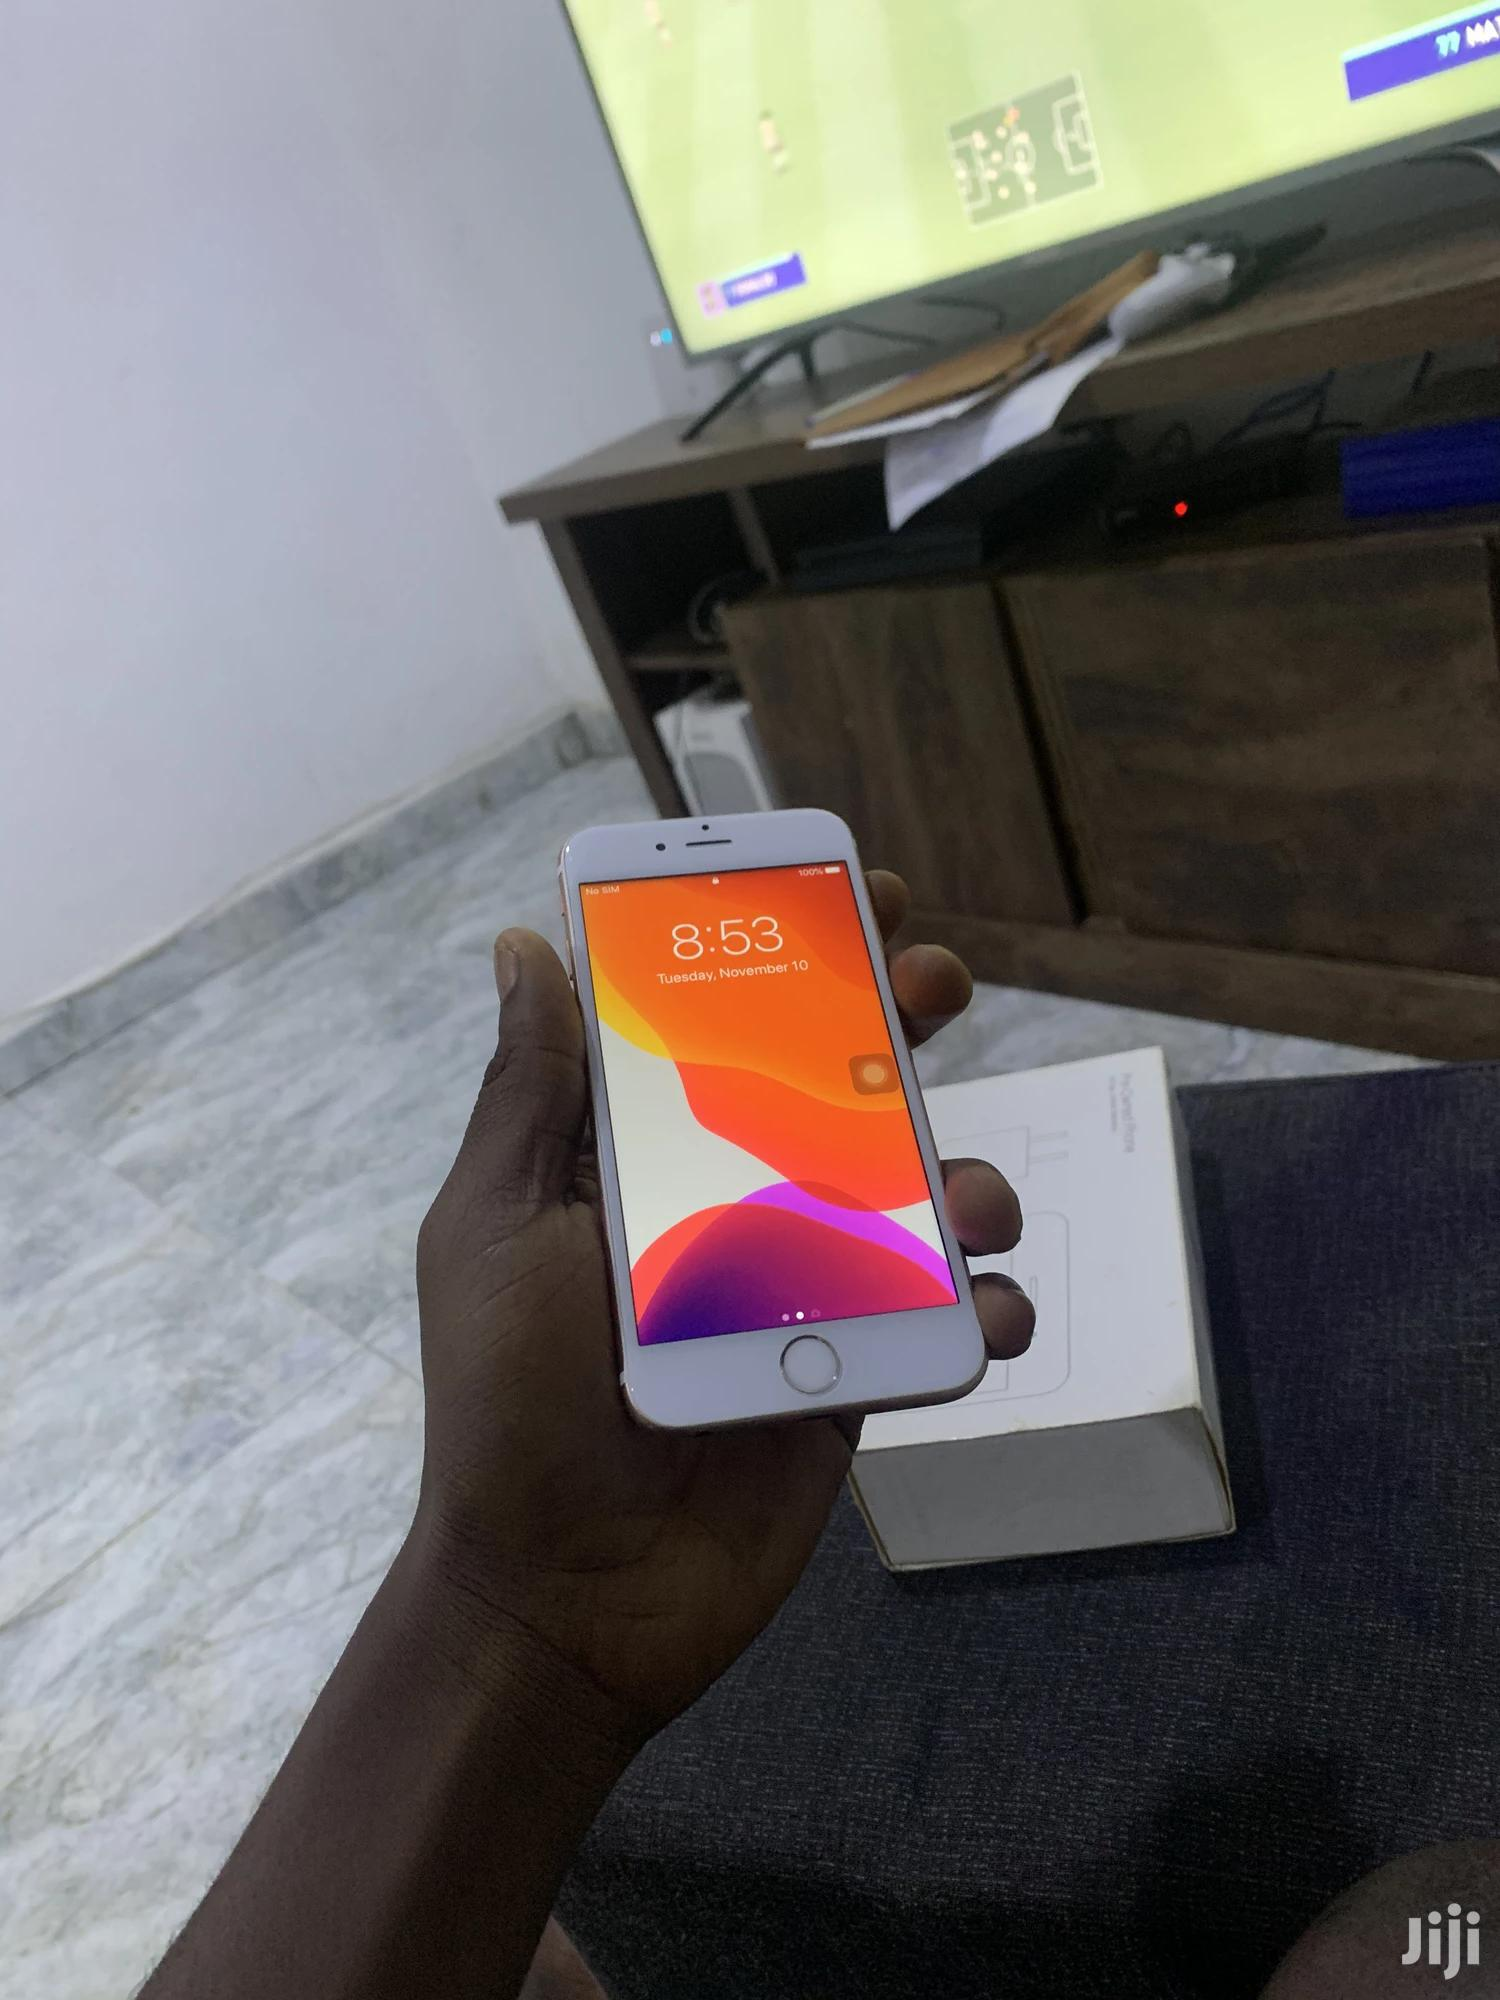 Apple iPhone 6s 64 GB Gold | Mobile Phones for sale in Dansoman, Greater Accra, Ghana